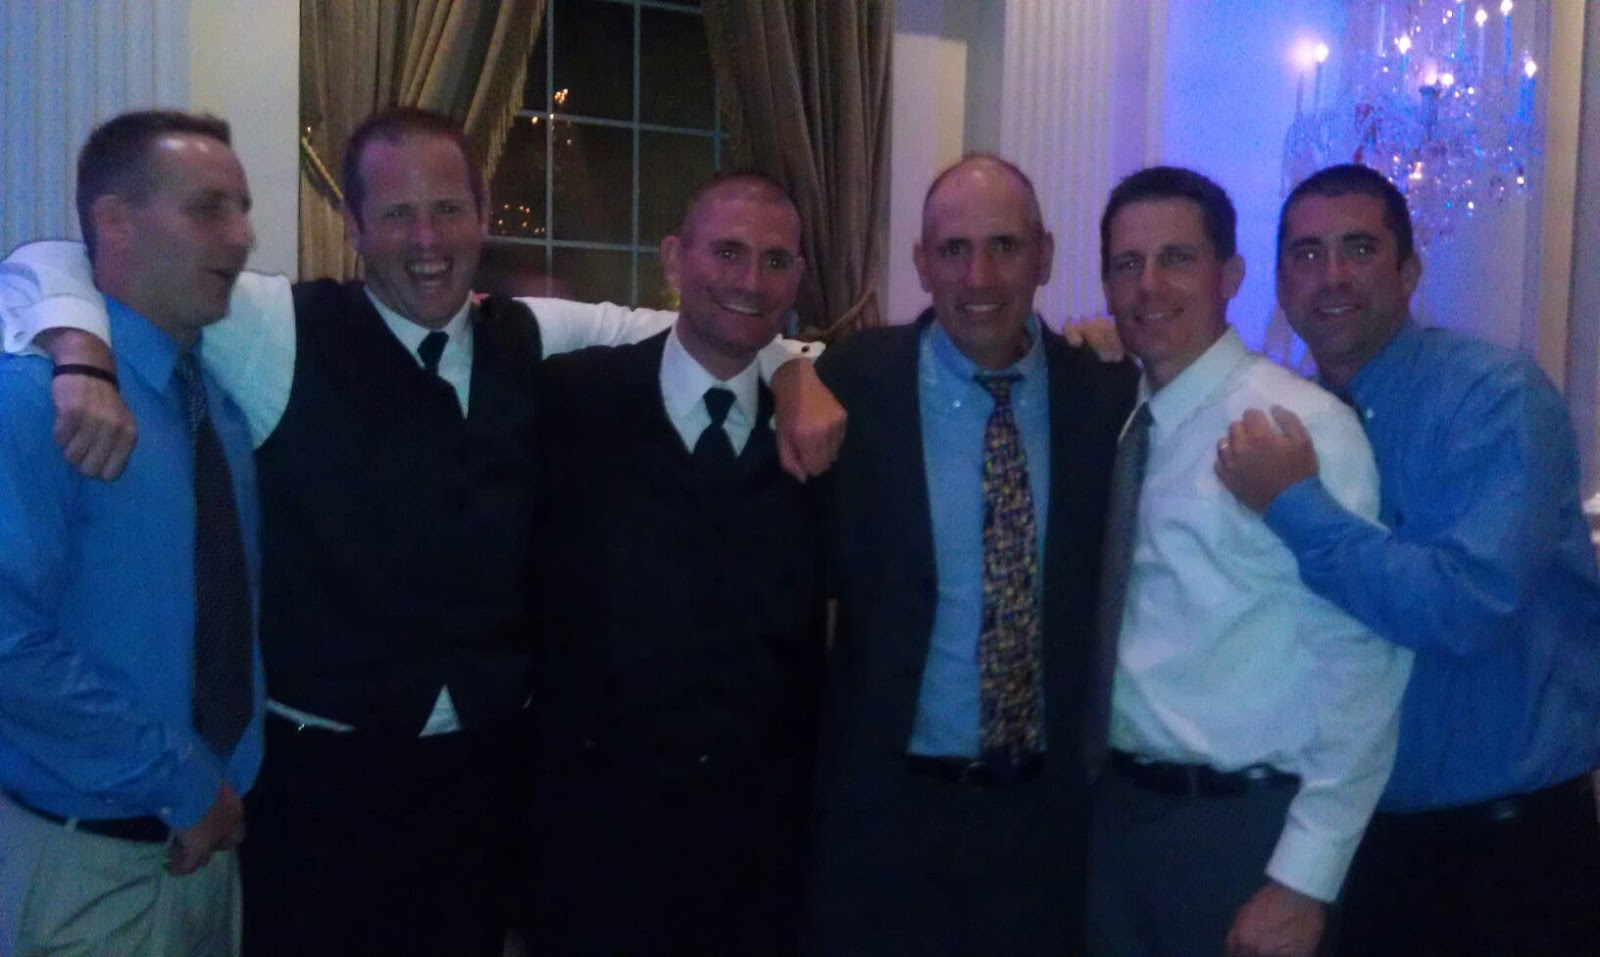 Mike driscoll wedding